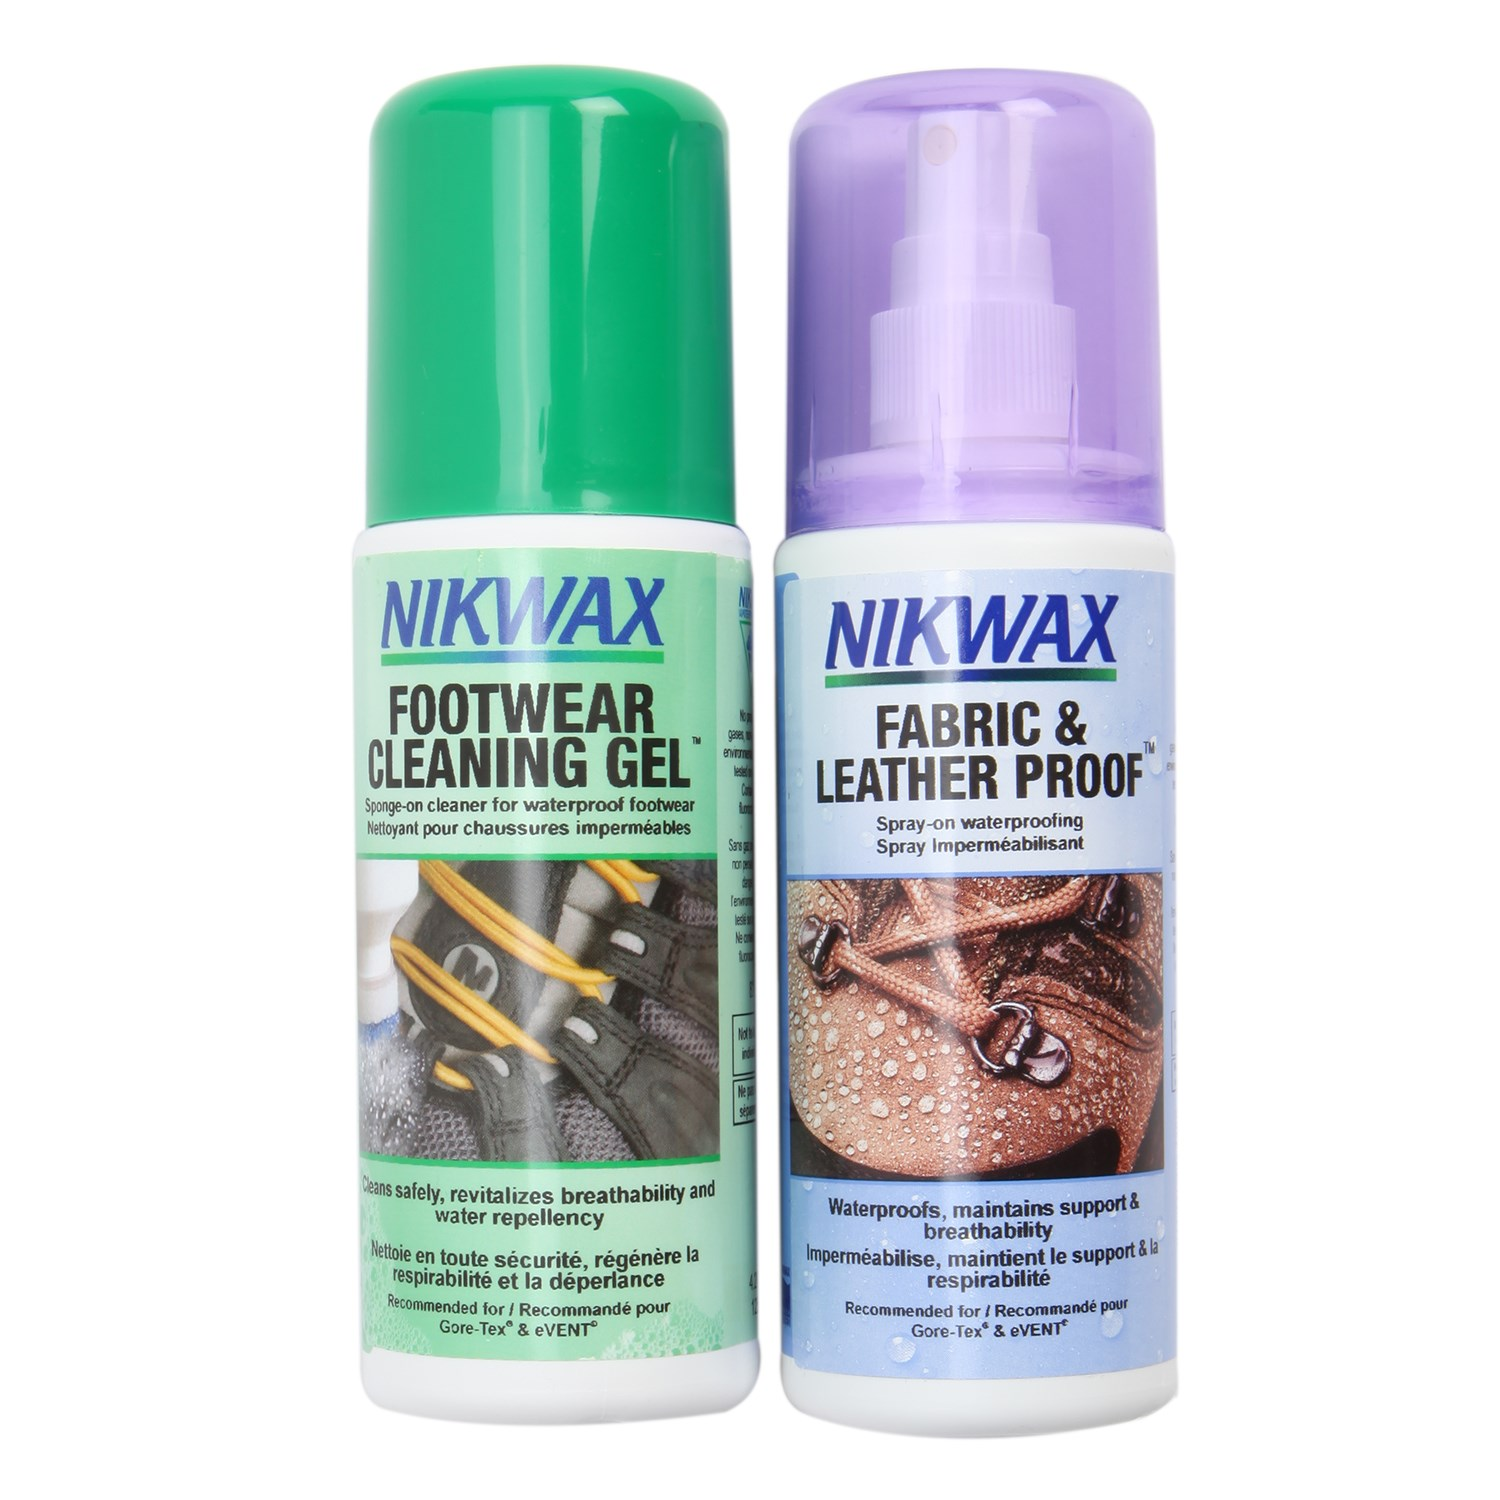 Nikwax Fabric and Leather (Spray On